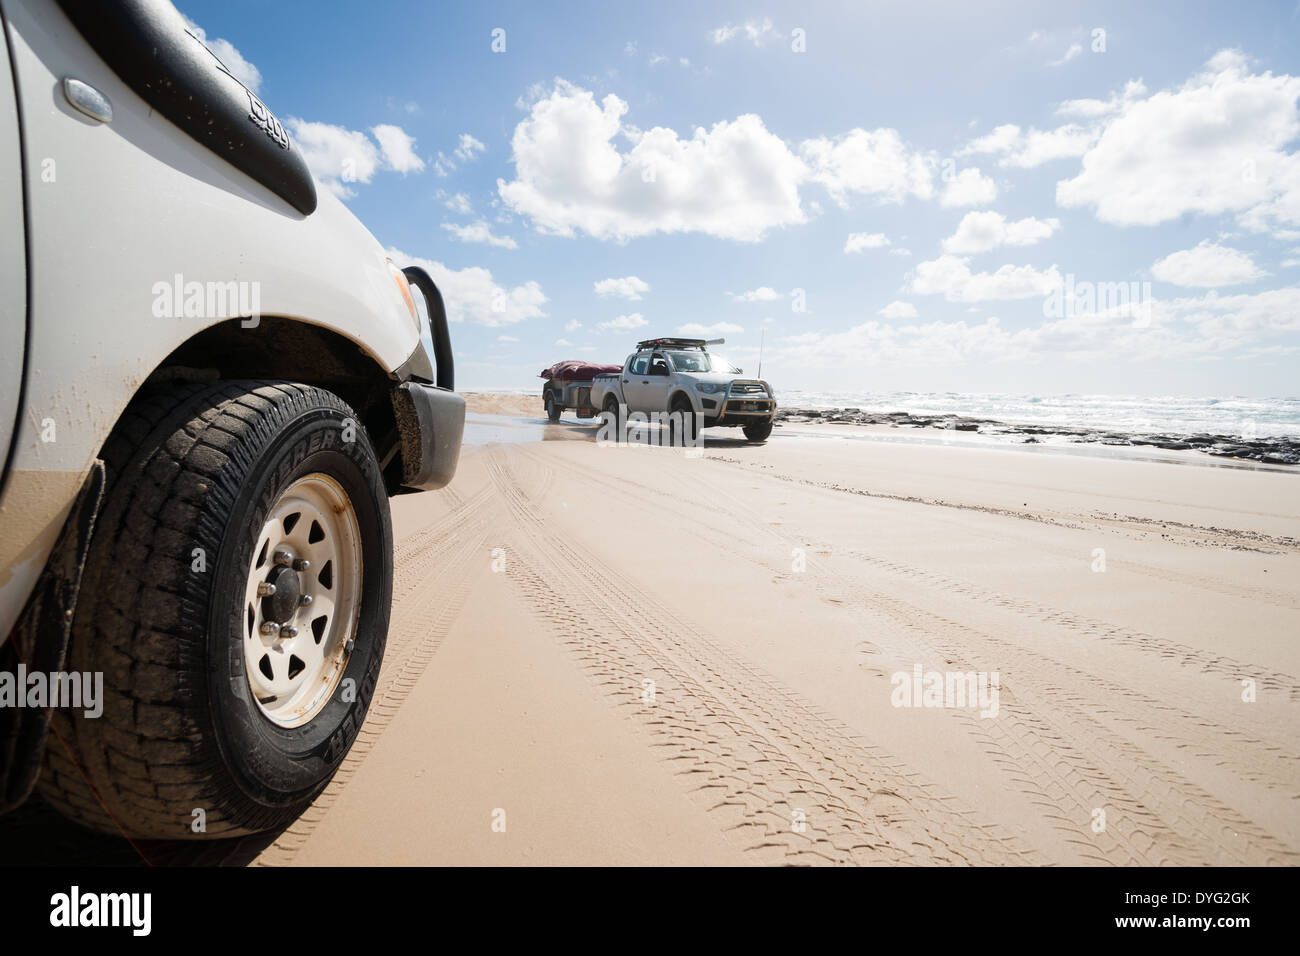 Tourist transportation along the Ten Mile beach on Fraser island, Australia in March 2014. - Stock Image